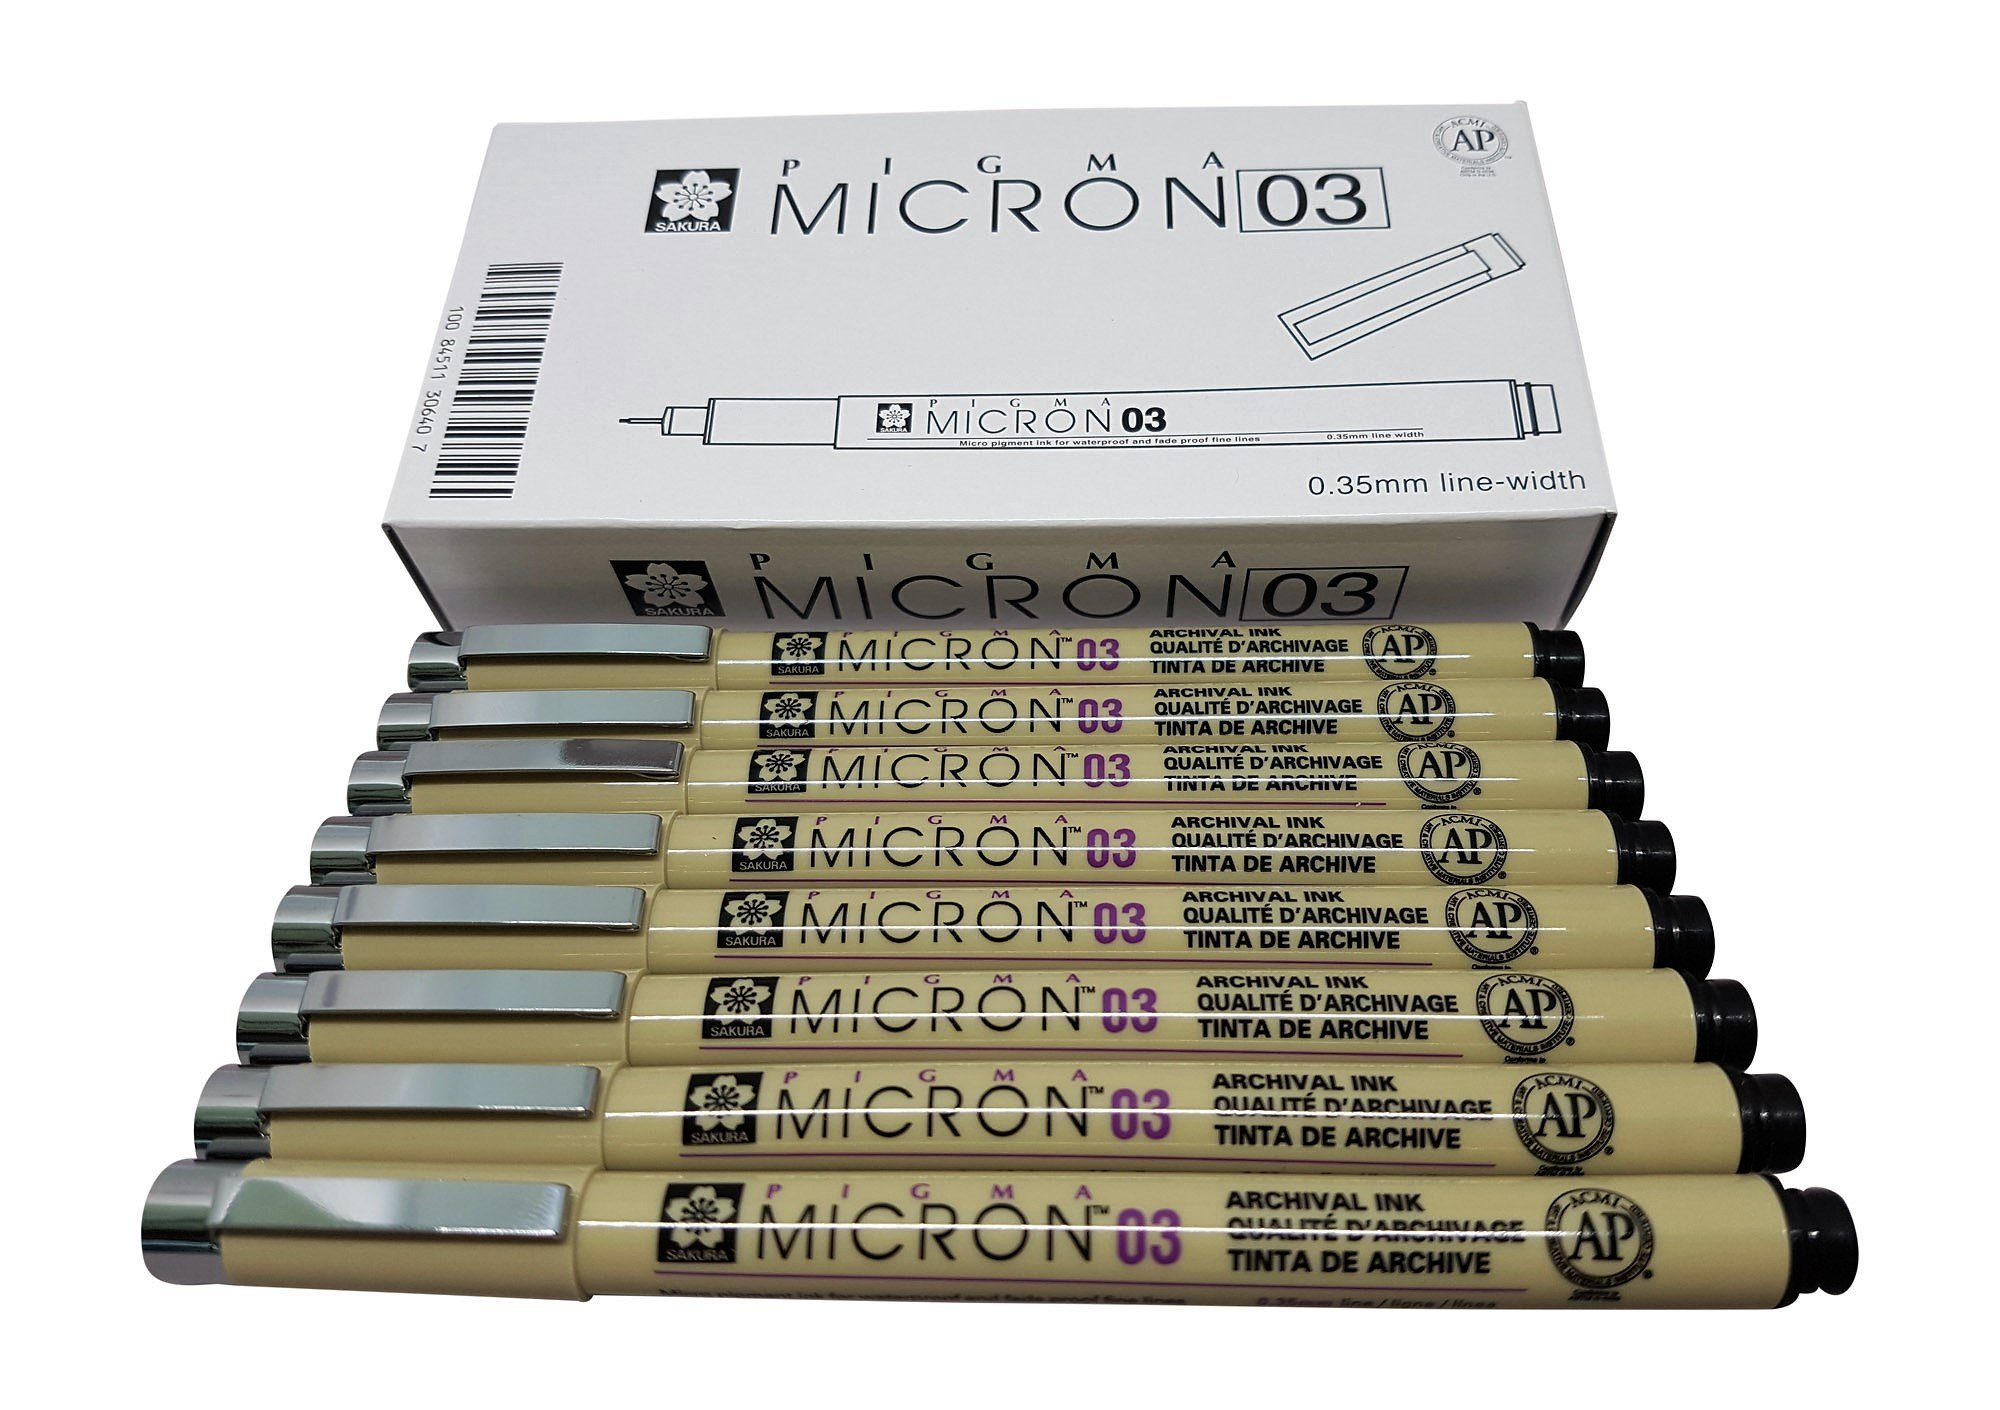 Sakura Pigma Micron pen 03 Black ink marker felt tip pen, Archival pigment ink pens for artist, zentangle, technical drawing pens - 8 pack of Micron 03 Black